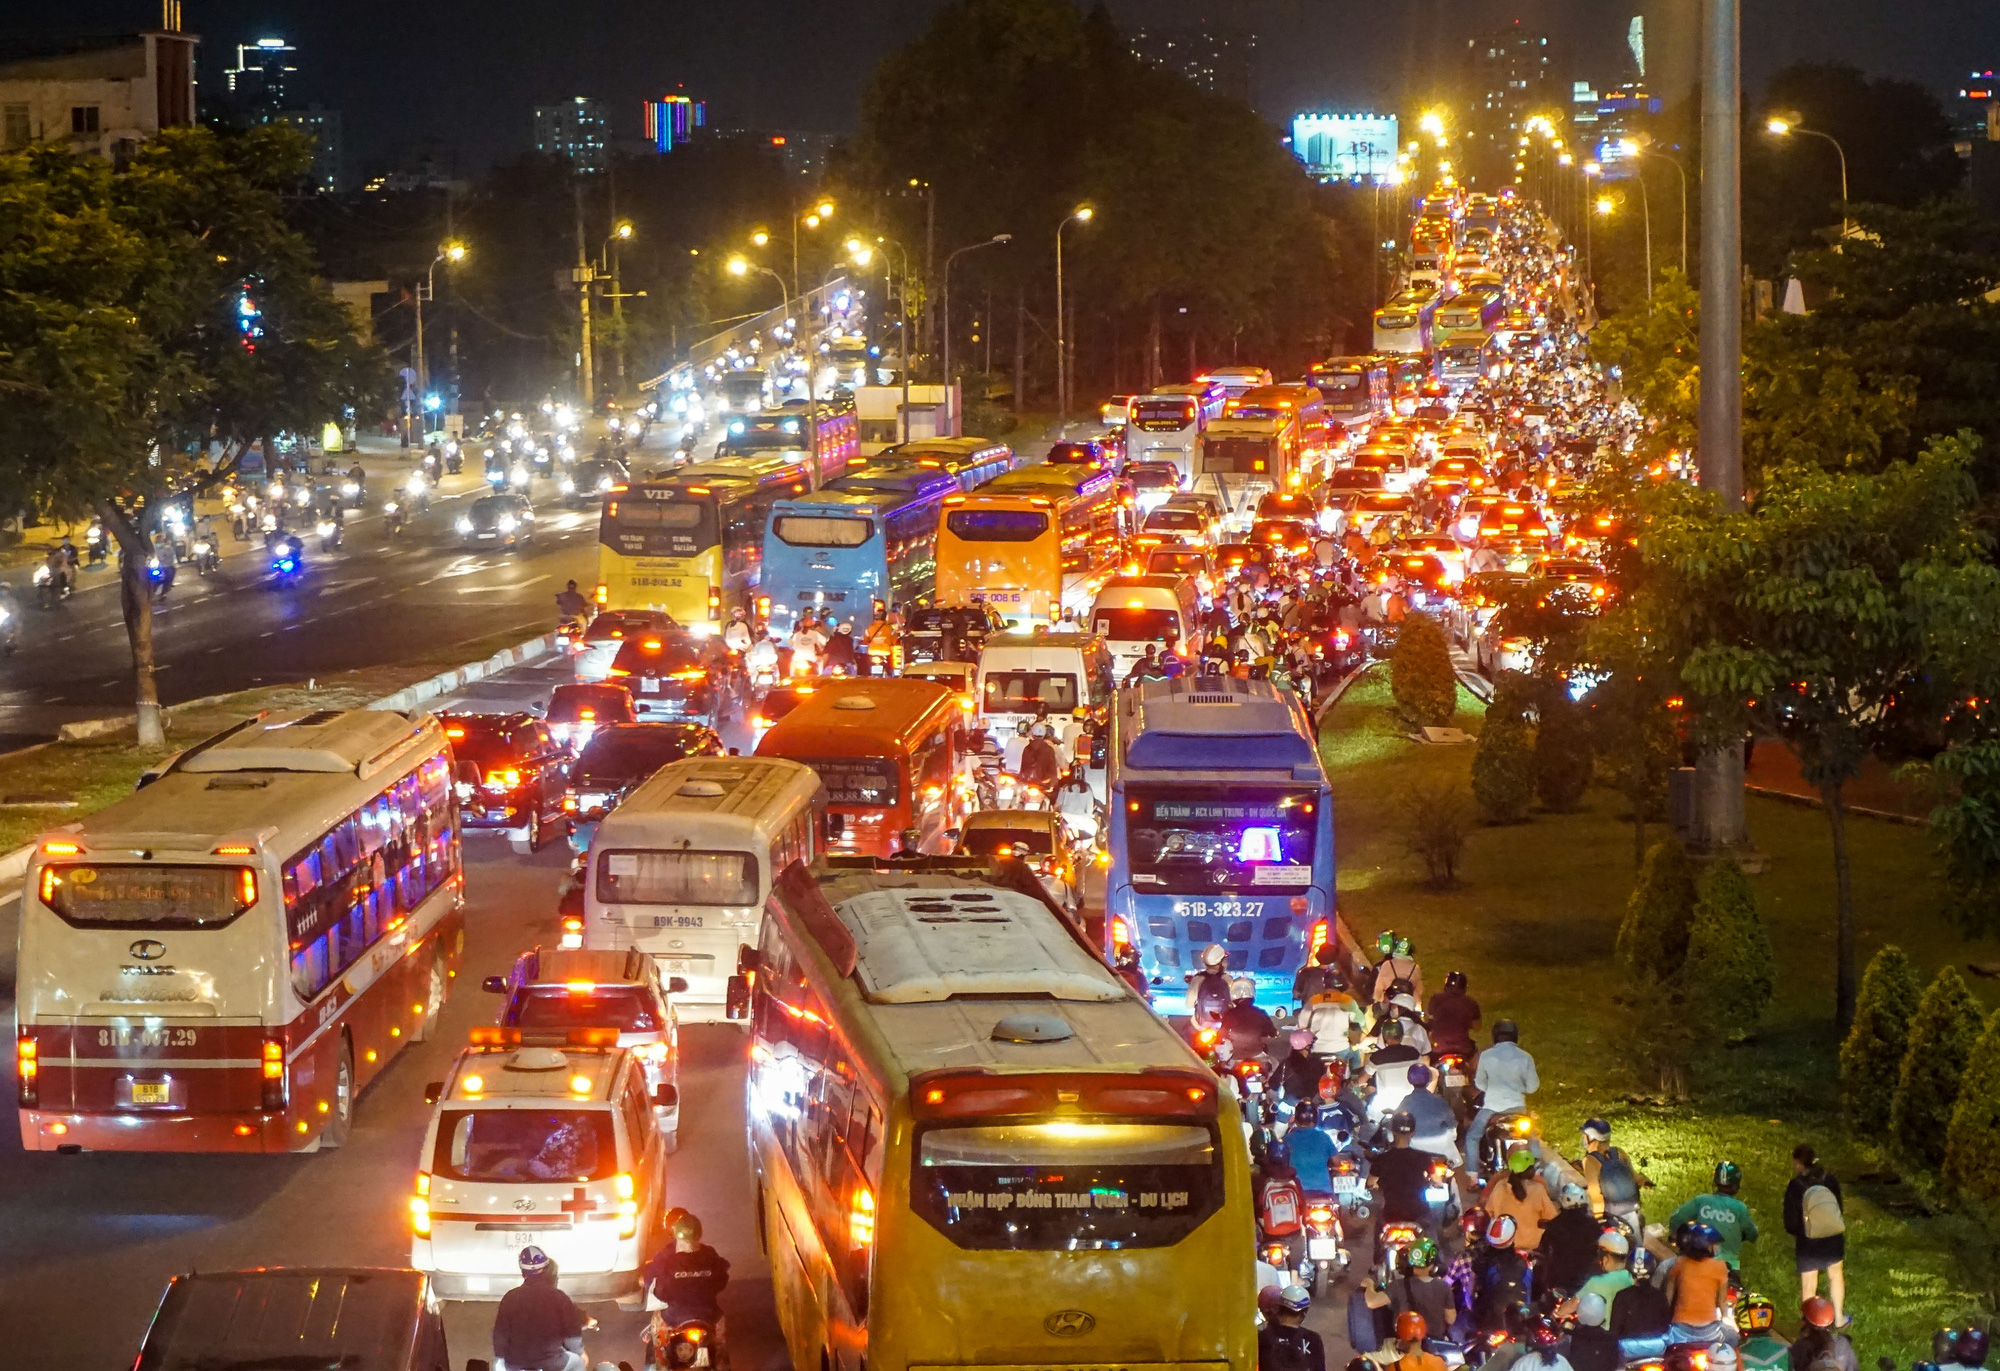 Motorbikes, automobiles, and long-haul buses travel at a snail's pace at Binh Trieu Bridge in Binh Thanh District Ho Chi Minh City, April 29, 2021. Photo: Chau Tuan / Tuoi Tre